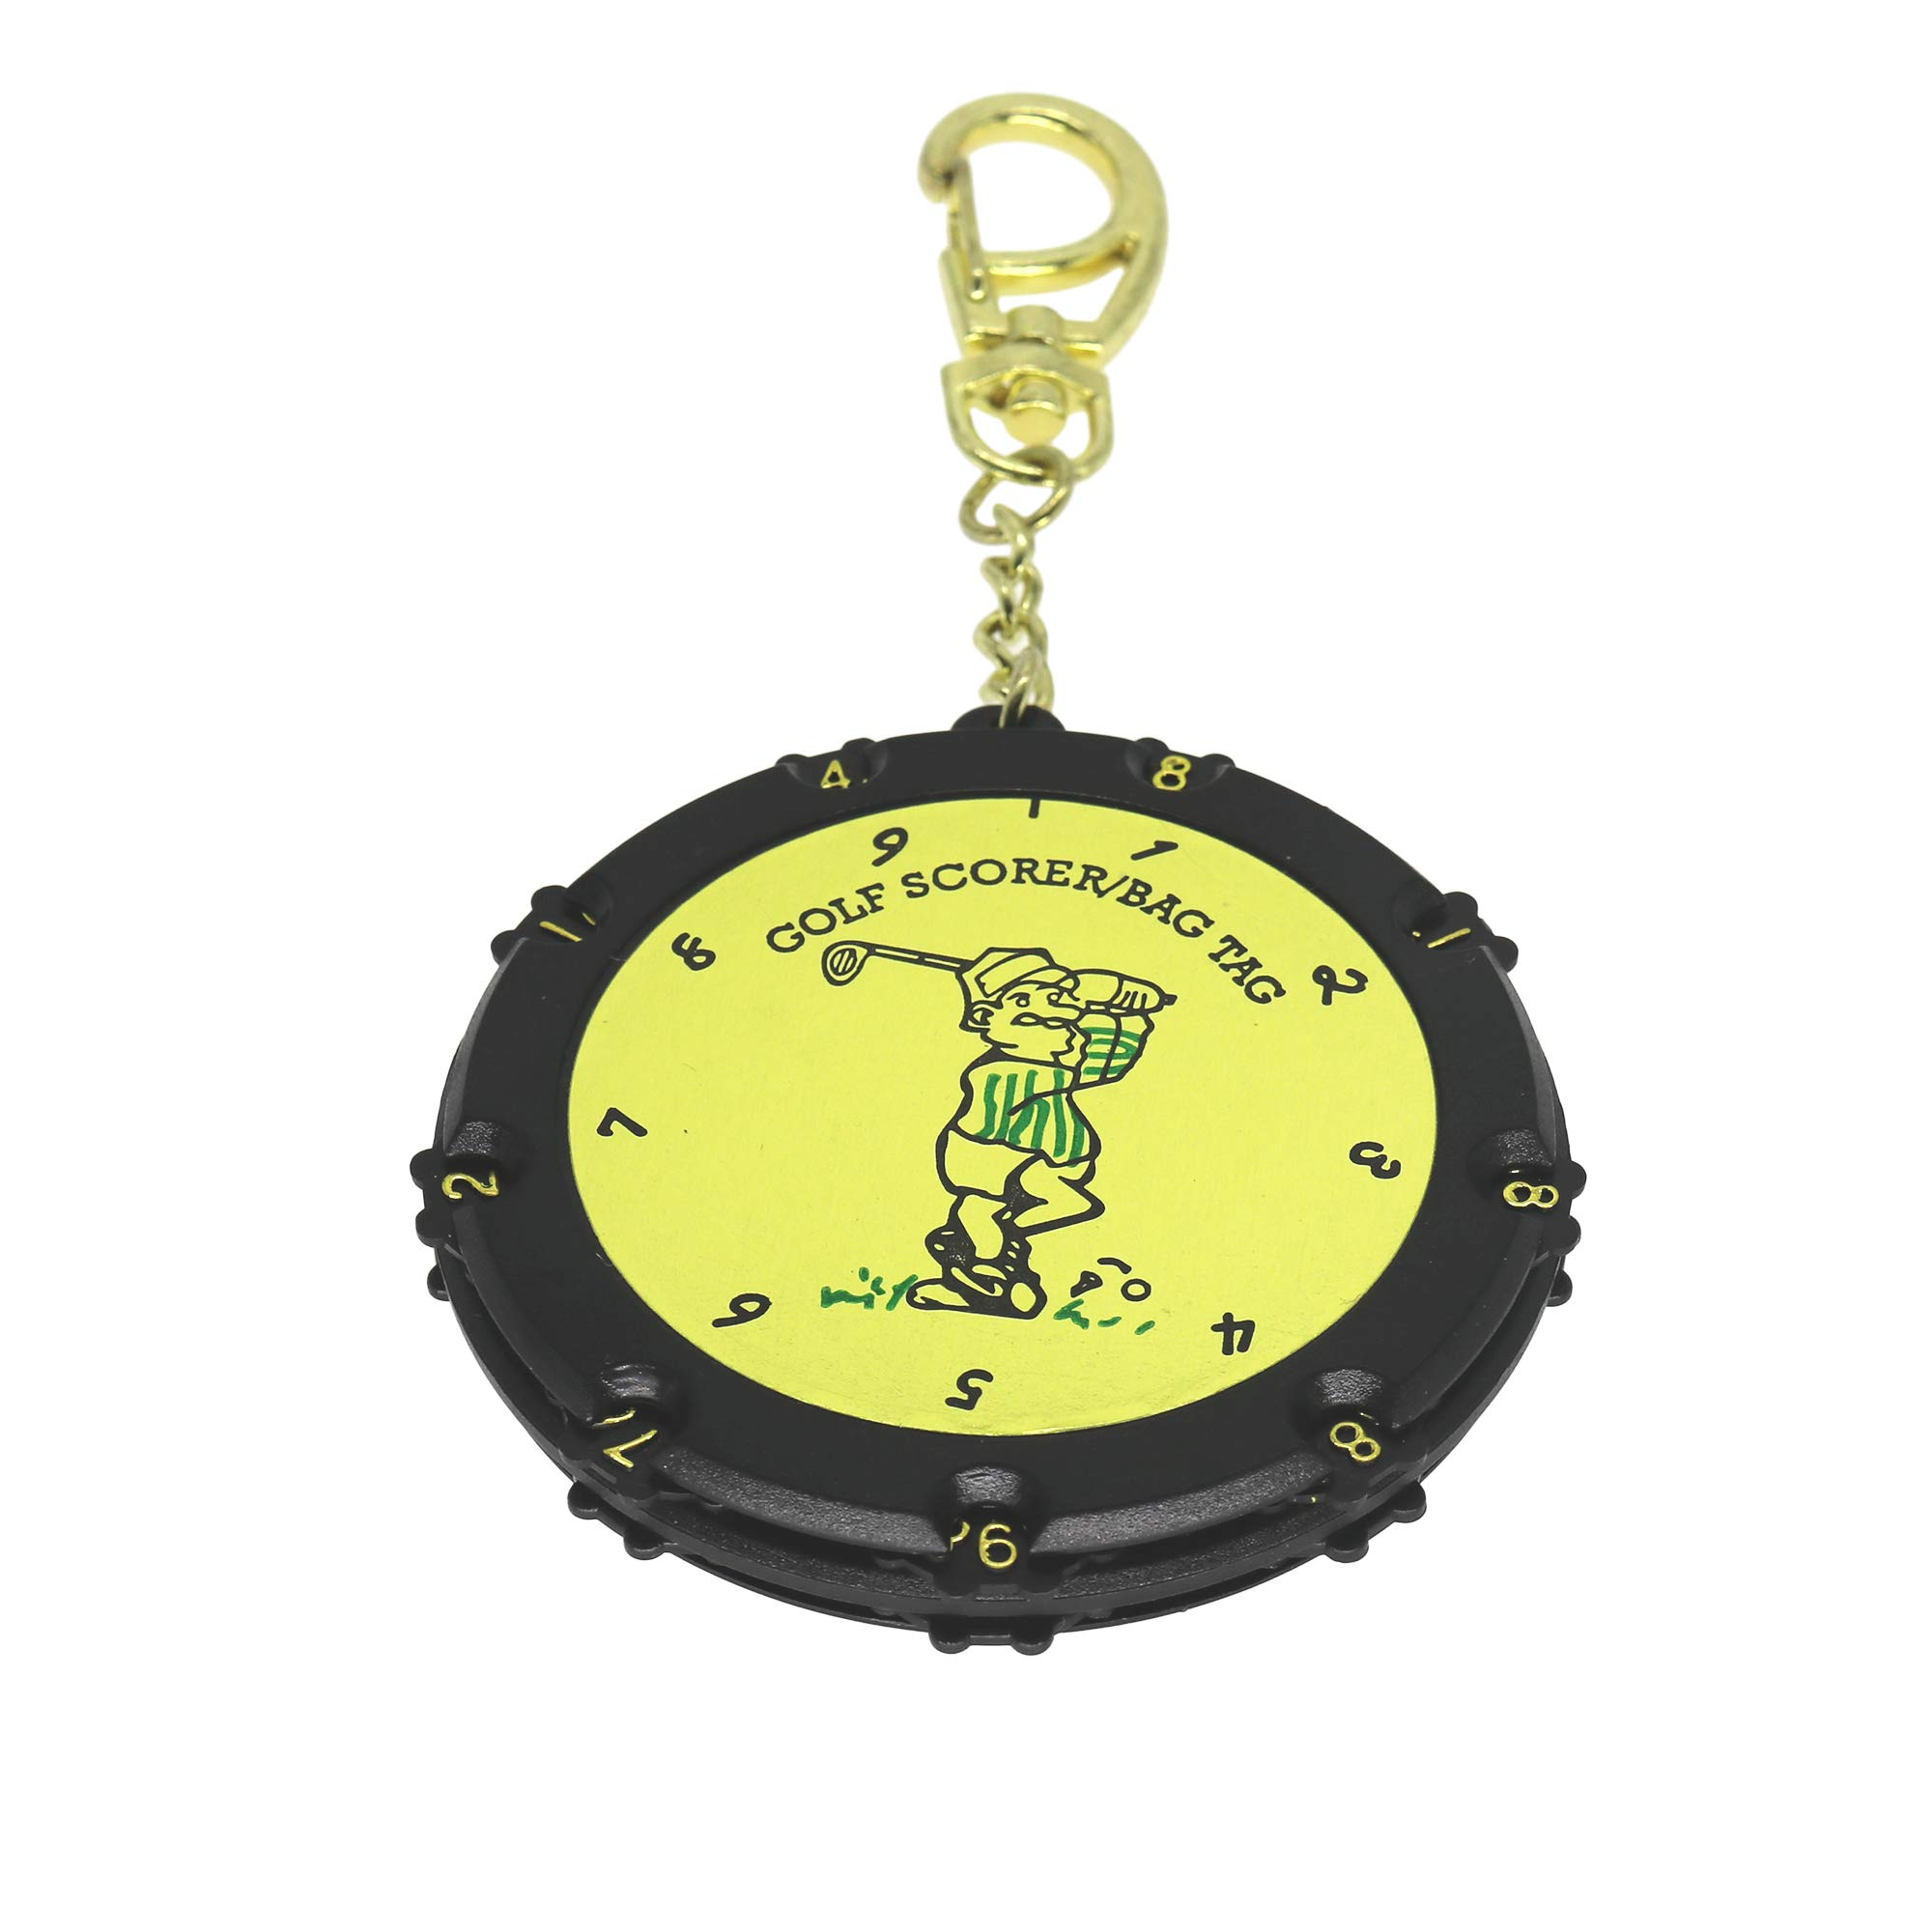 QHALEN Golf Score Counter 18 Holes Golf Score Stroke Shot Counter Keeper Round Scoring Tag with Clip Keychain